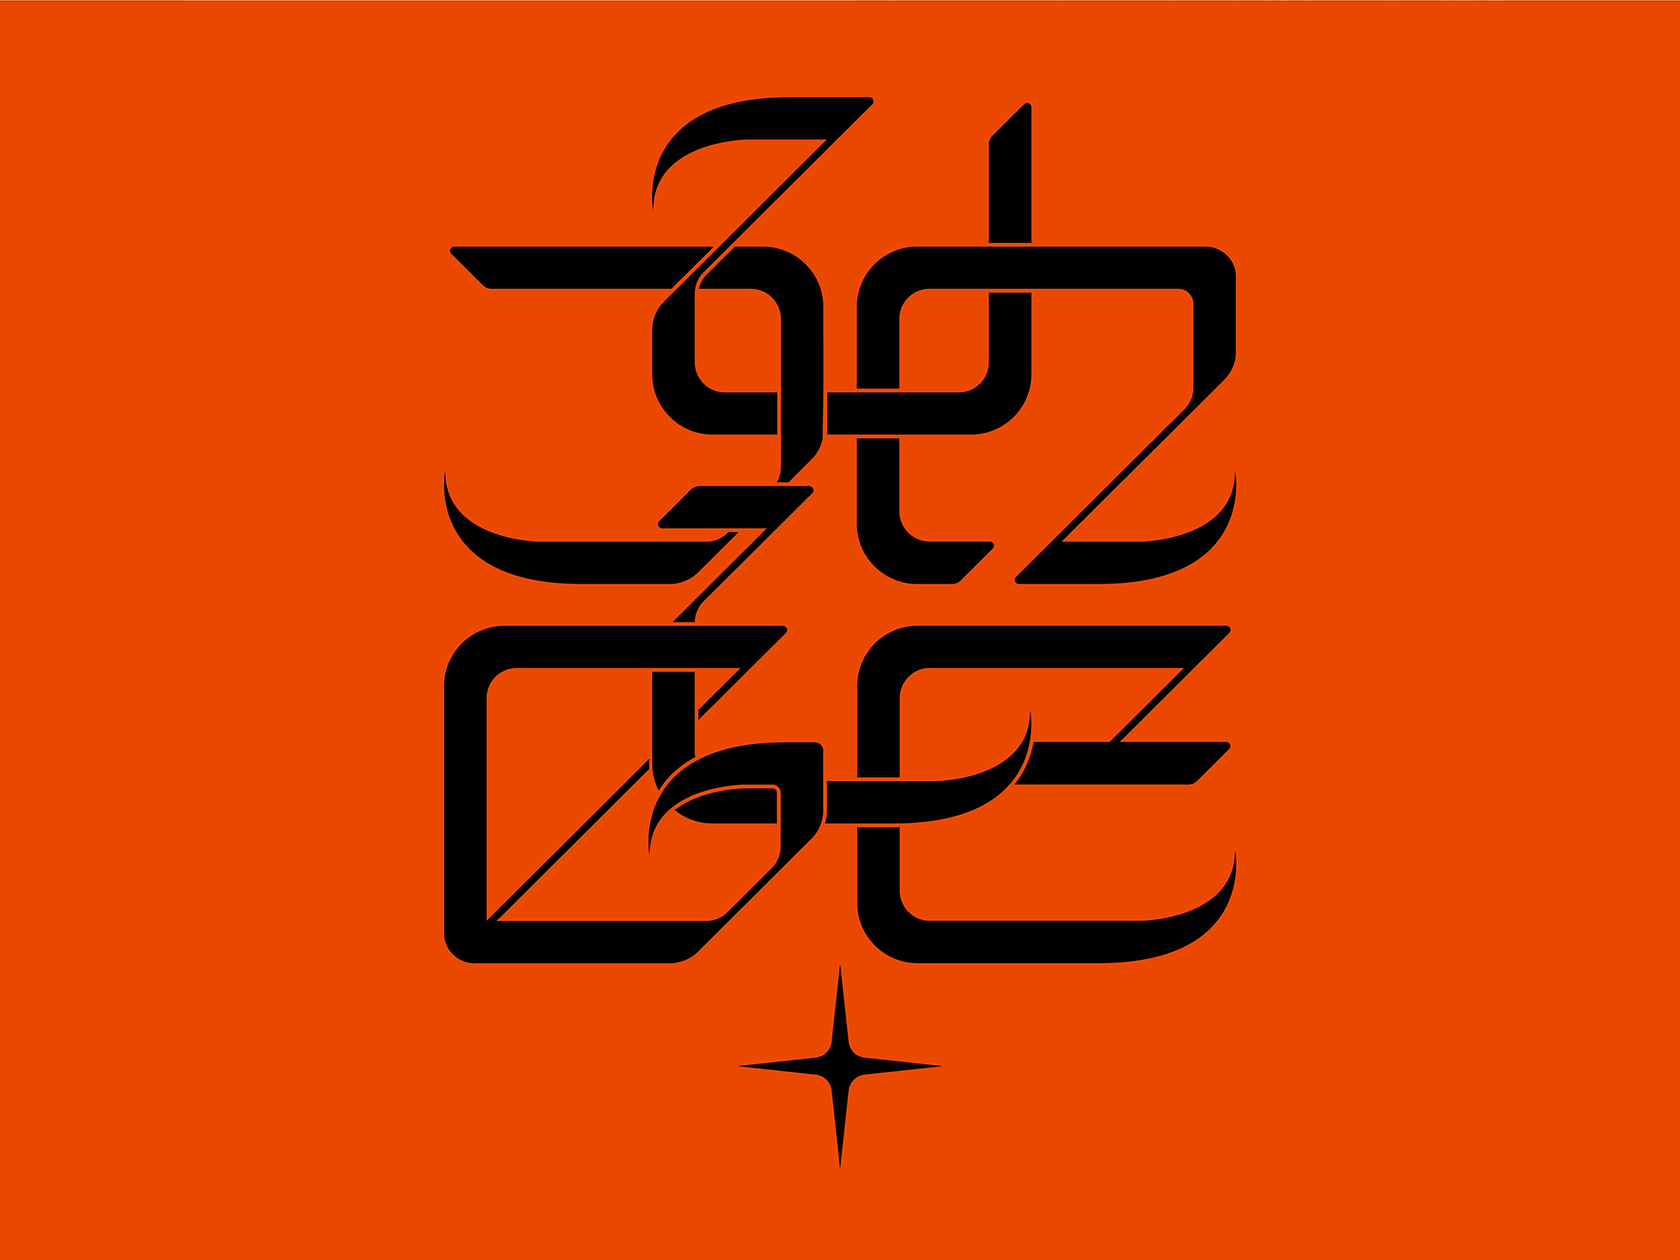 00 collide24 Jose Houdini  Fabio Florez - 'Mughal' typeface turned from a game into an on-going collaboration